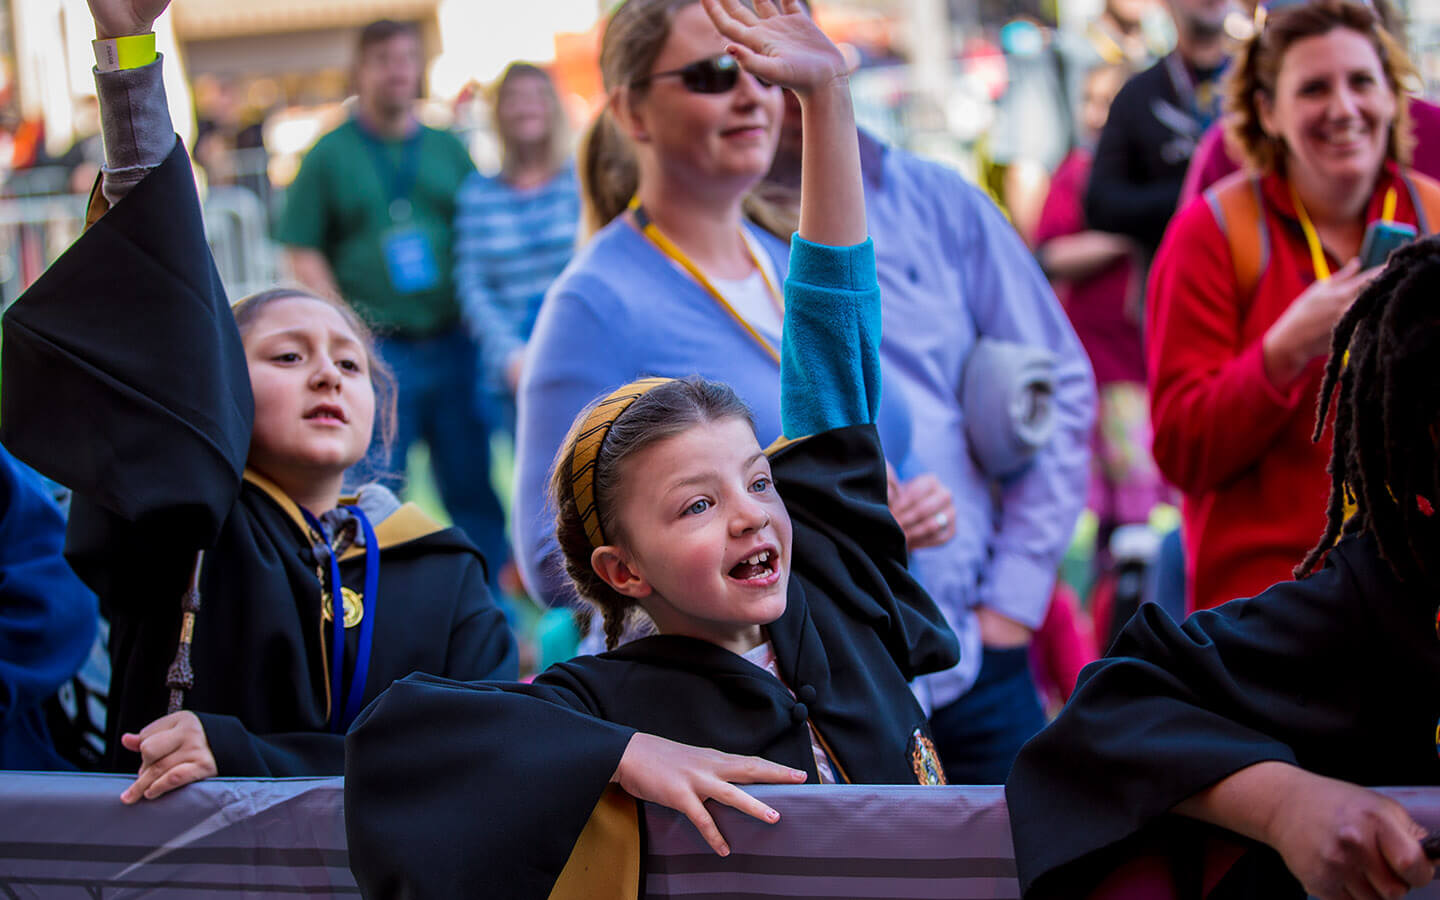 Universal Orlando Reveals Fan Favorite Activities Returning To A Celebration Of Harry Potter